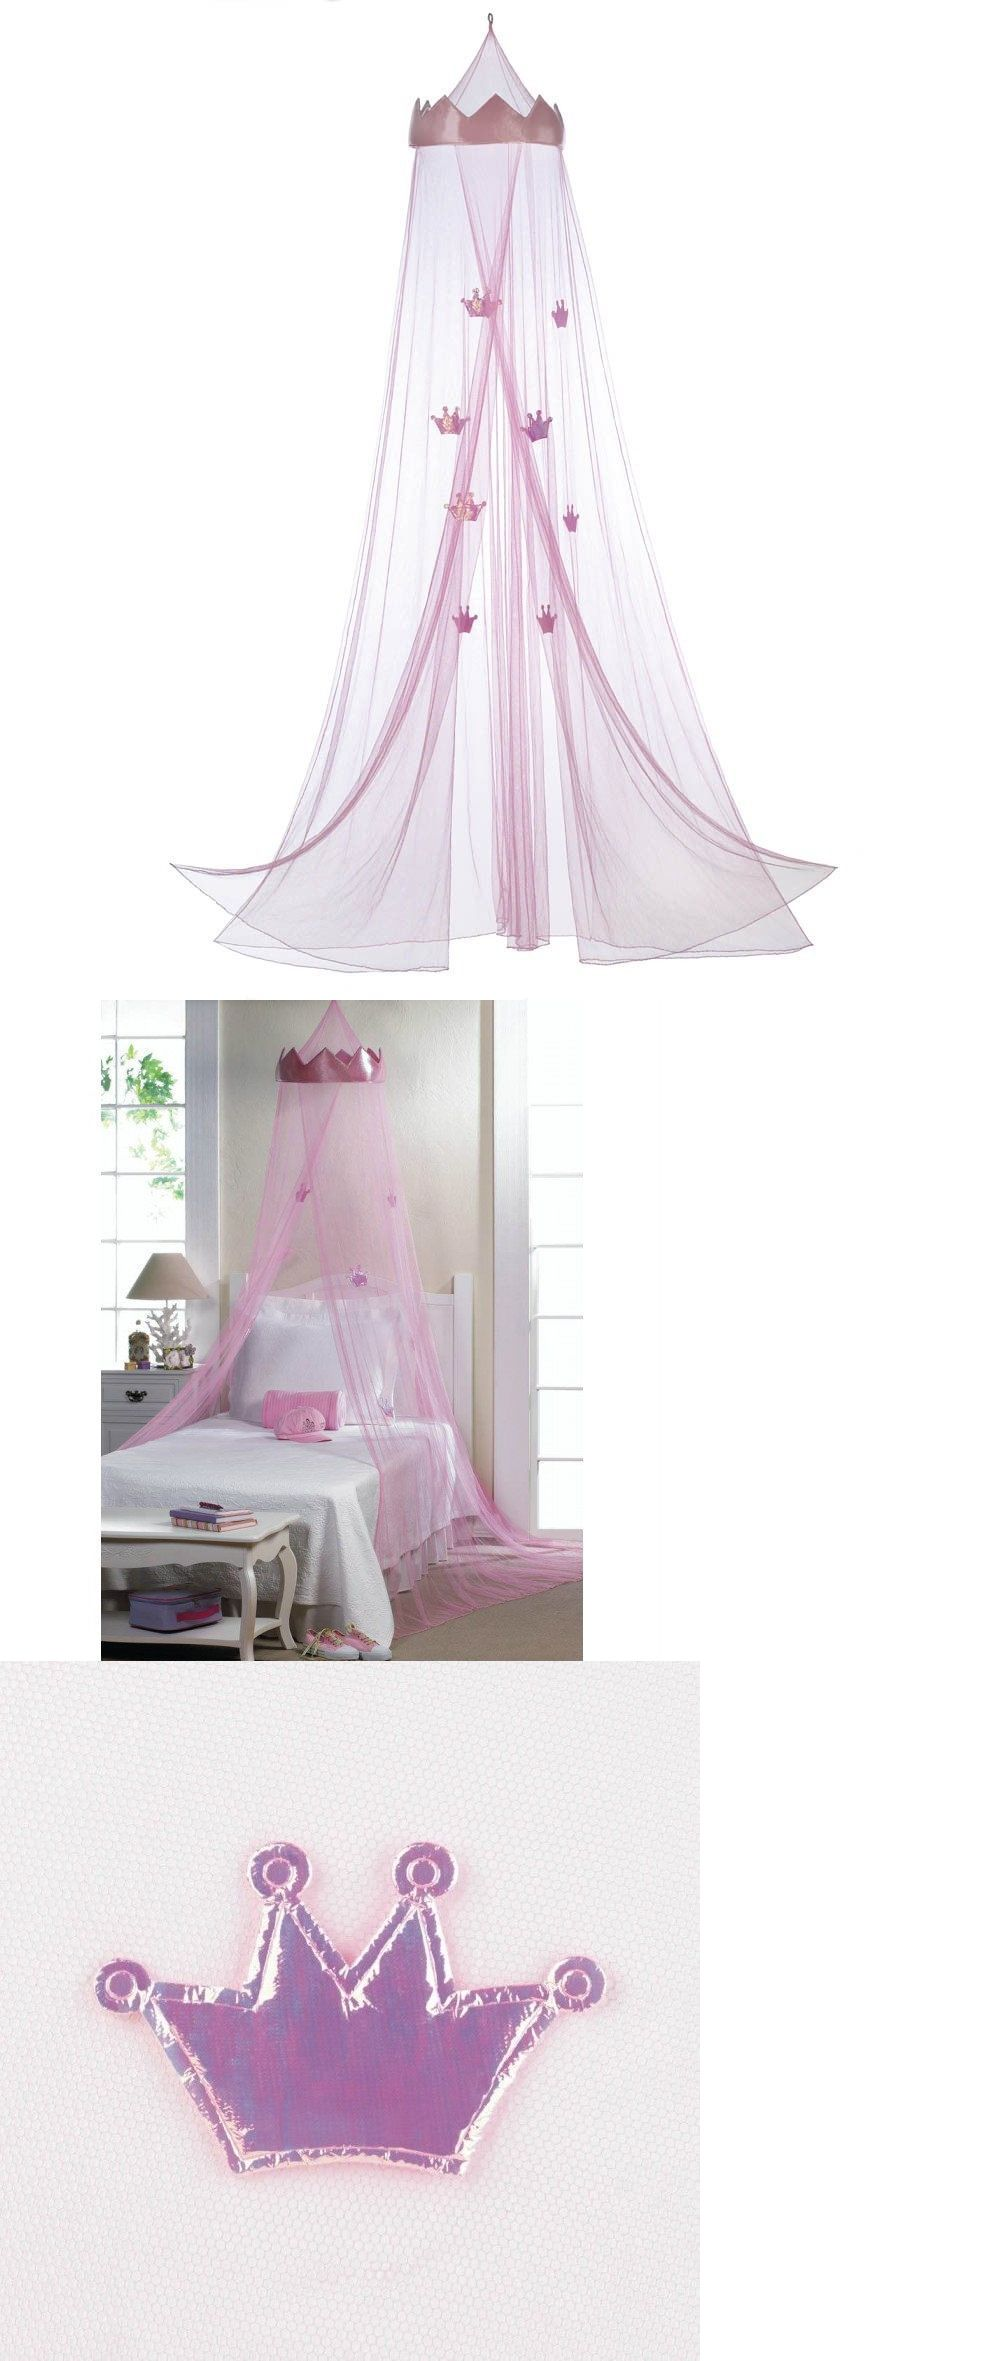 Canopies And Netting 176986 Pink Princess Crown Bed Canopy It Now Only 22 75 On Ebay